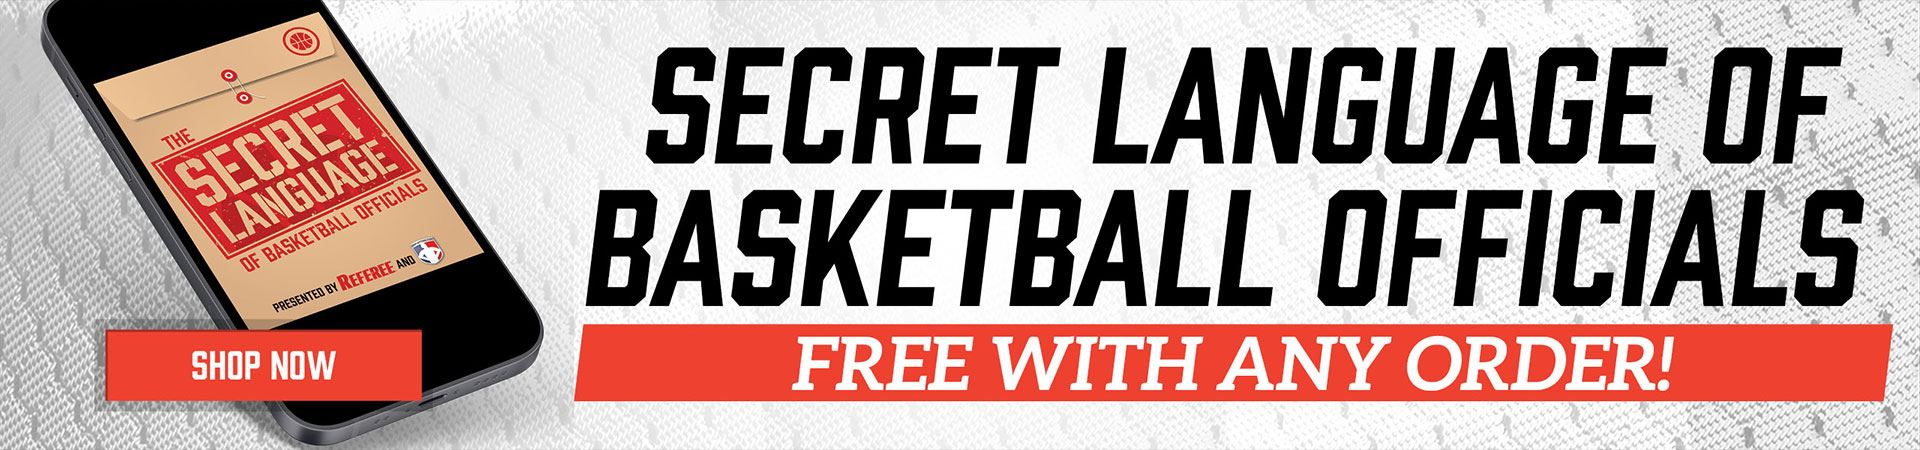 The Secret Language of Basketball Officials